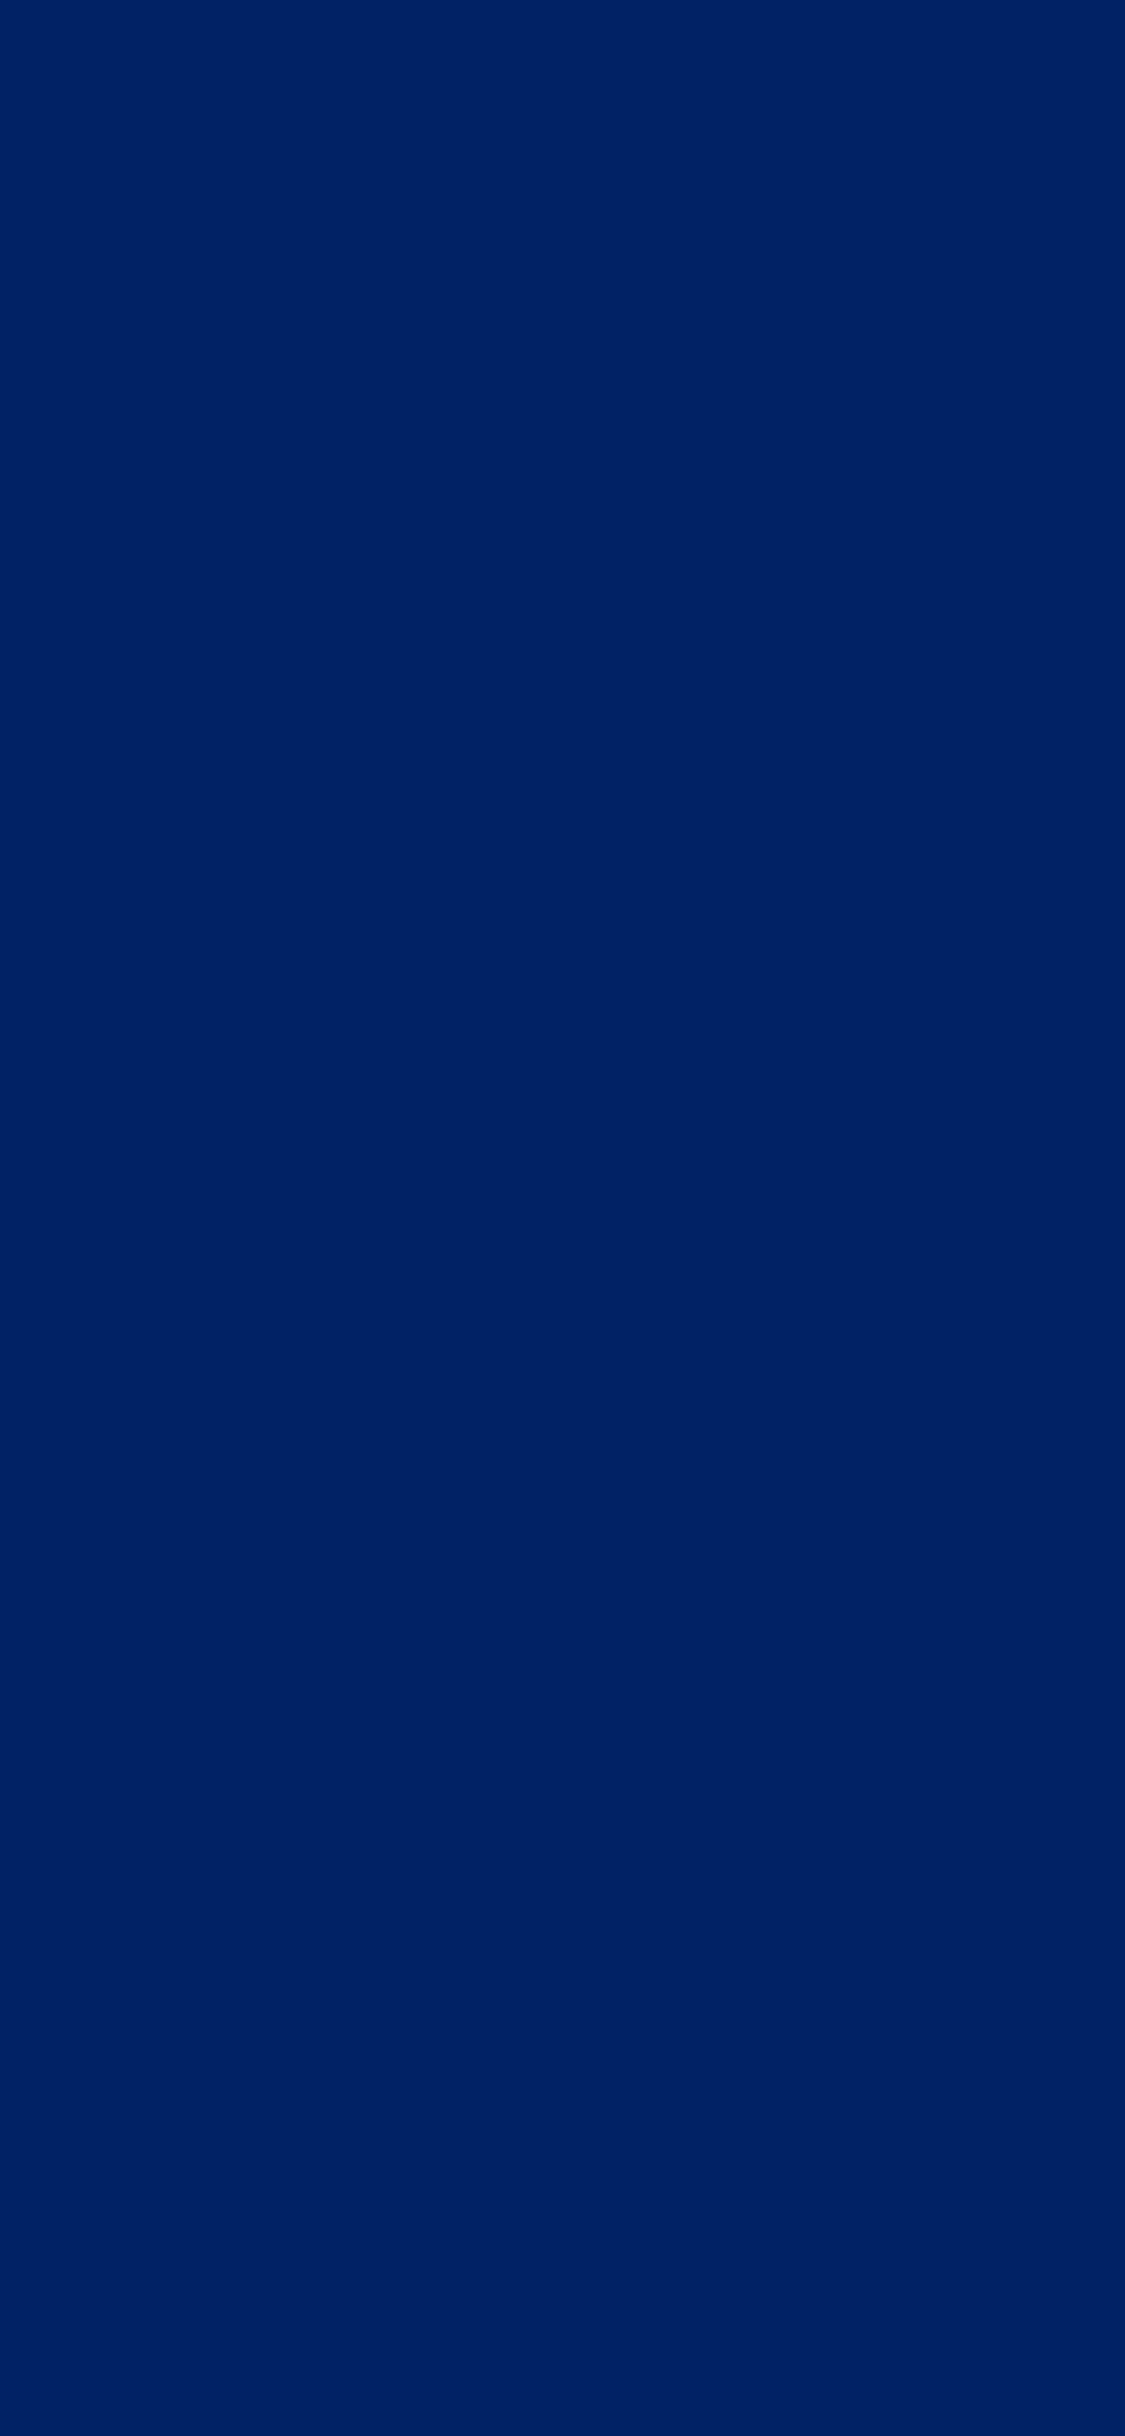 1125x2436 Royal Blue Traditional Solid Color Background